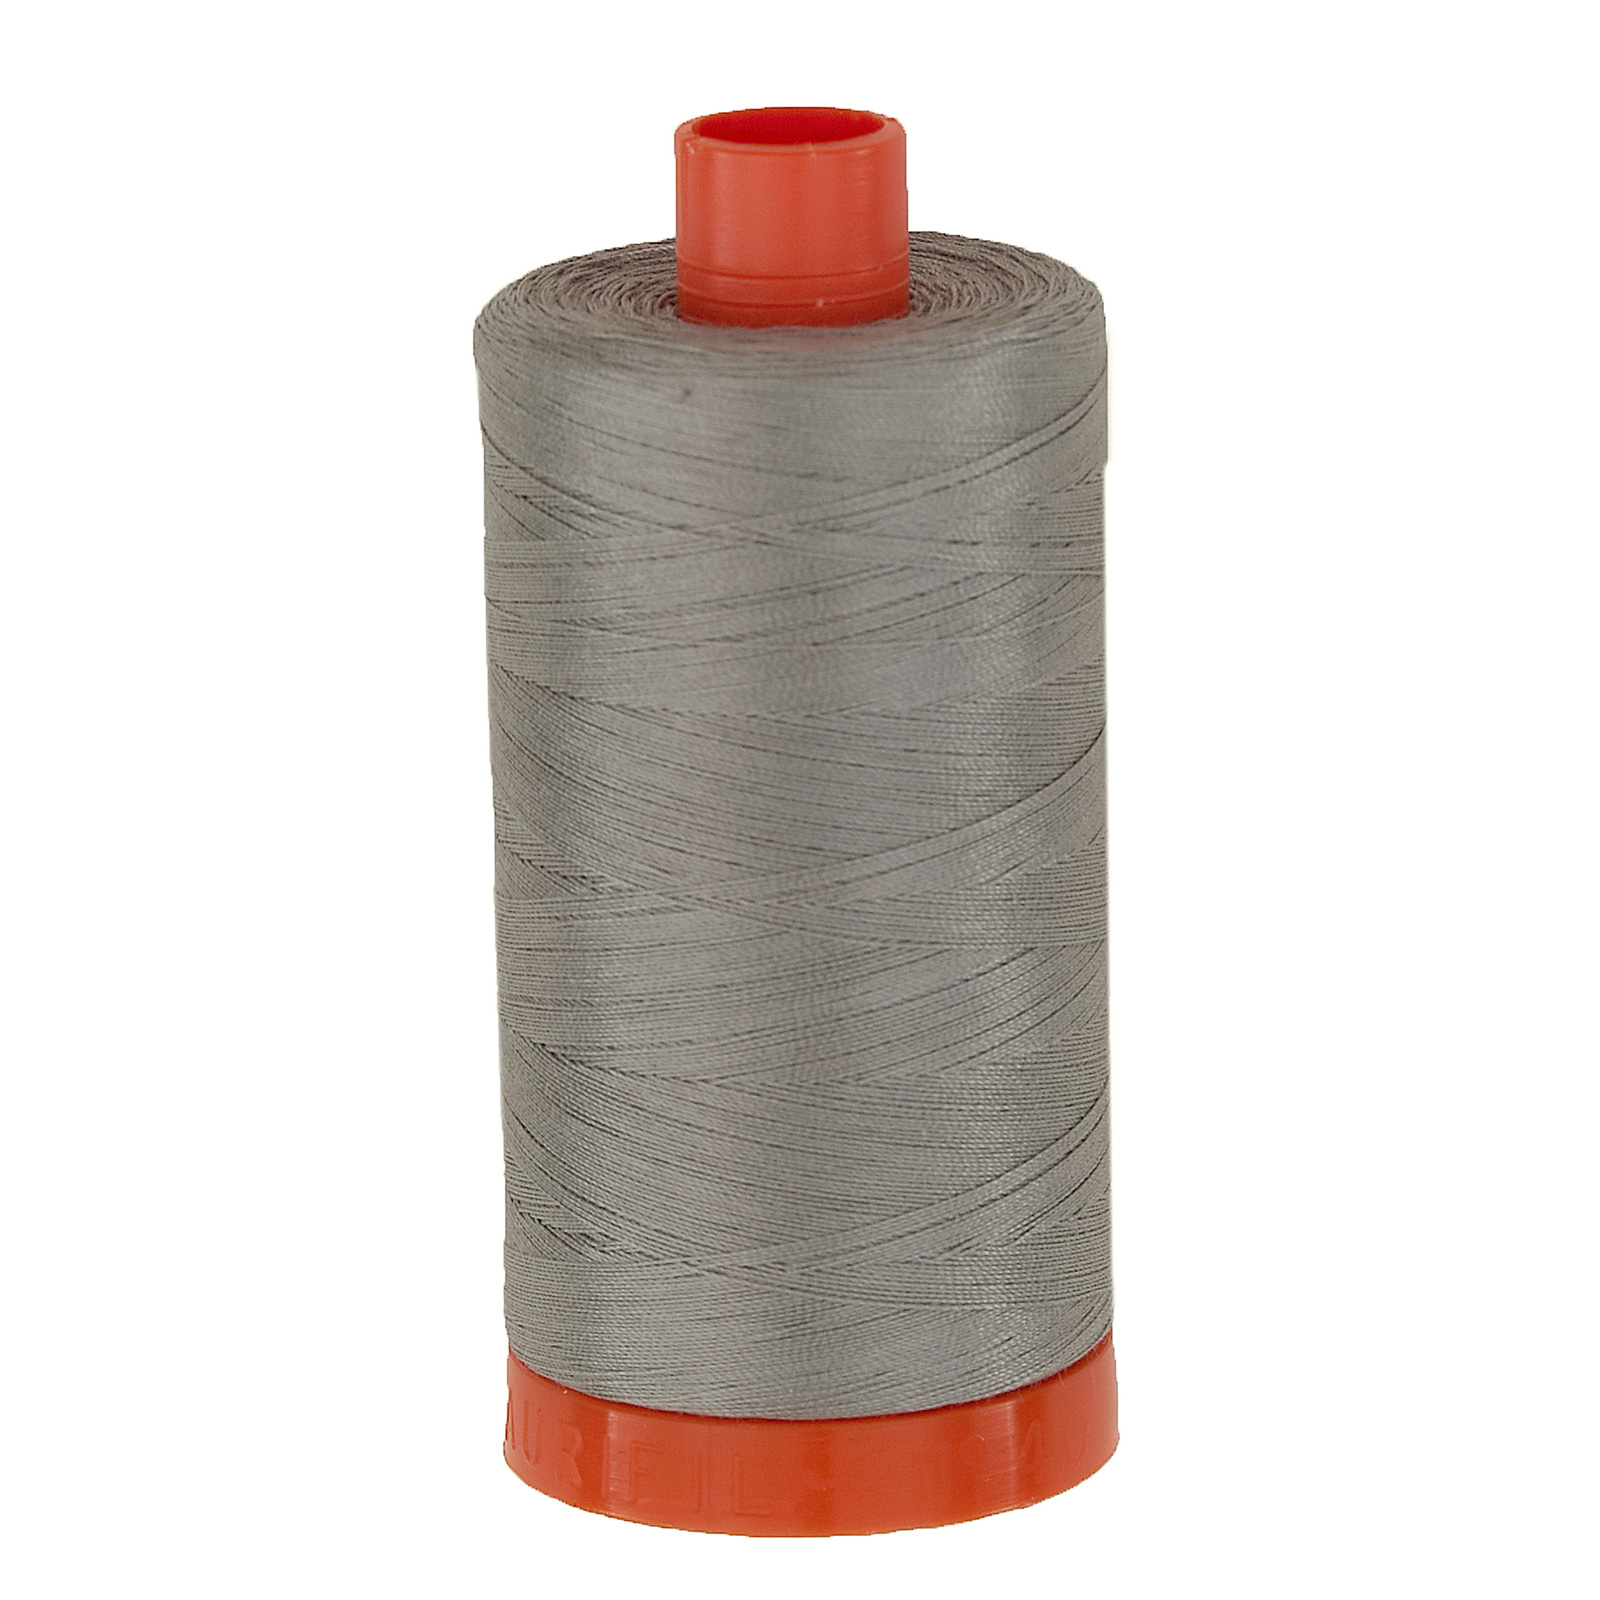 Image of Aurifil Quilting Thread 50wt Stainless Steel